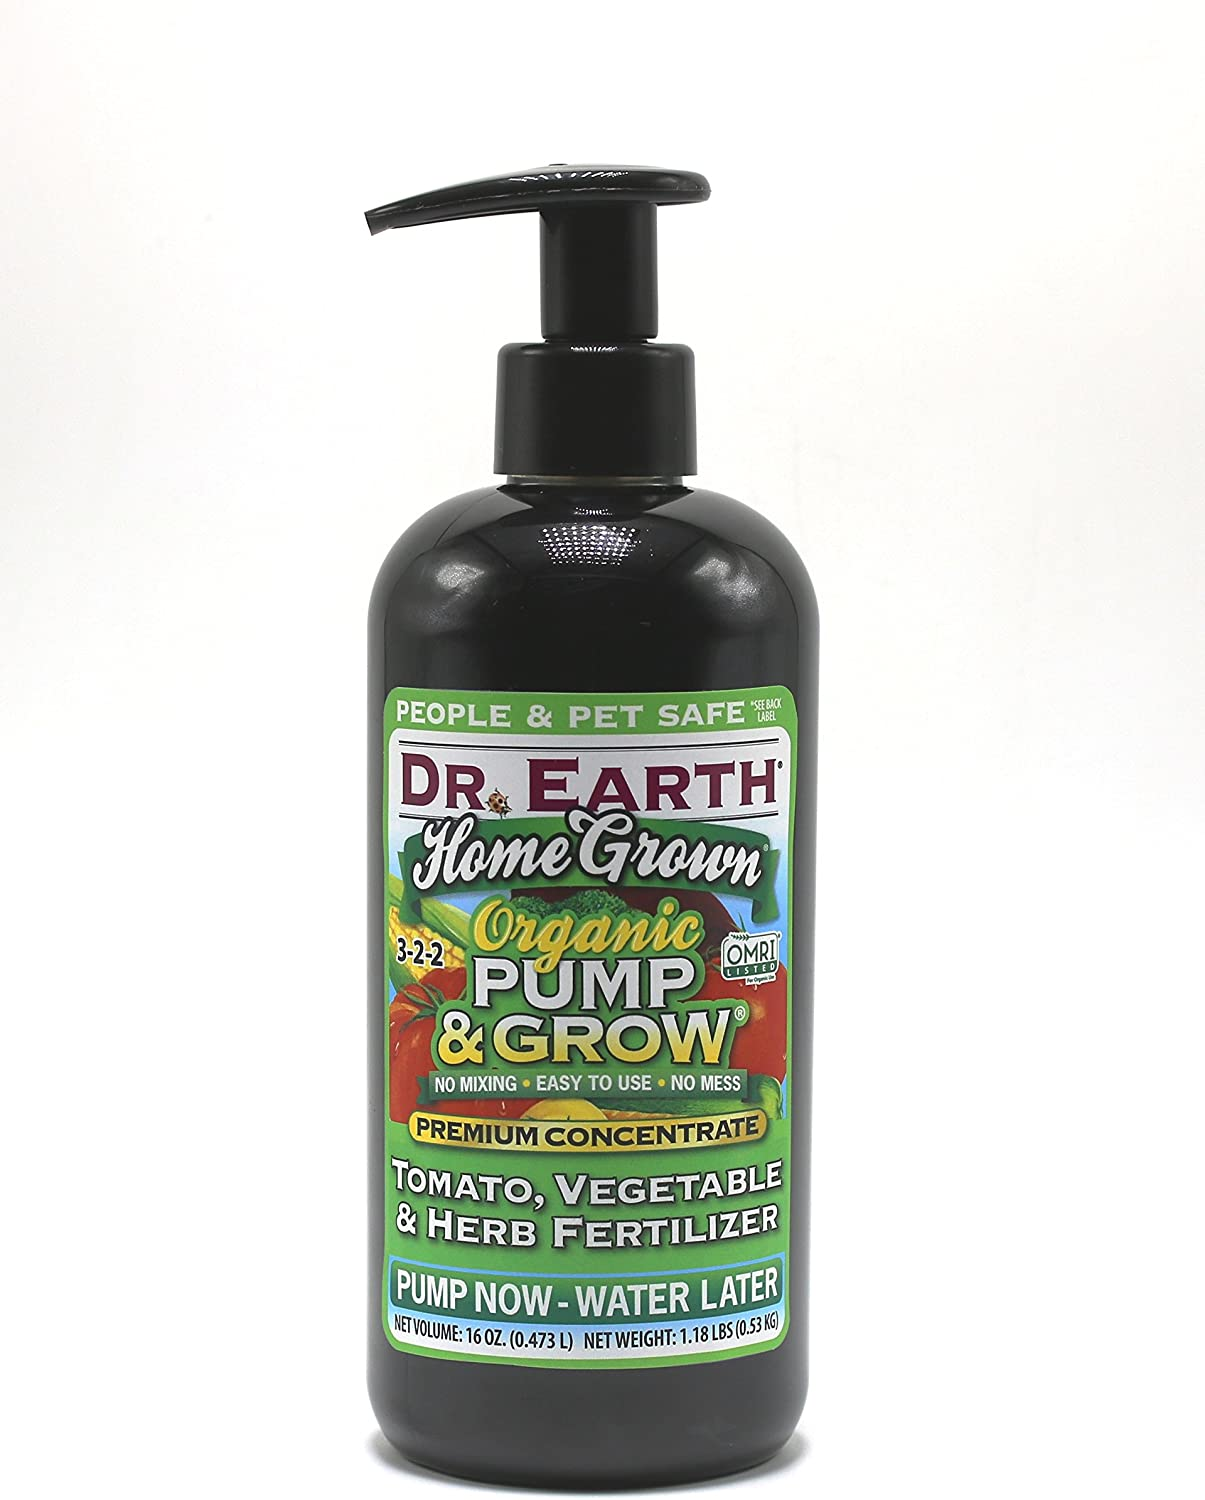 Dr. Earth 1066 Pump & Grow Home Grown Tomato, Vegetable & Herb Fertilizer 8 oz, Green